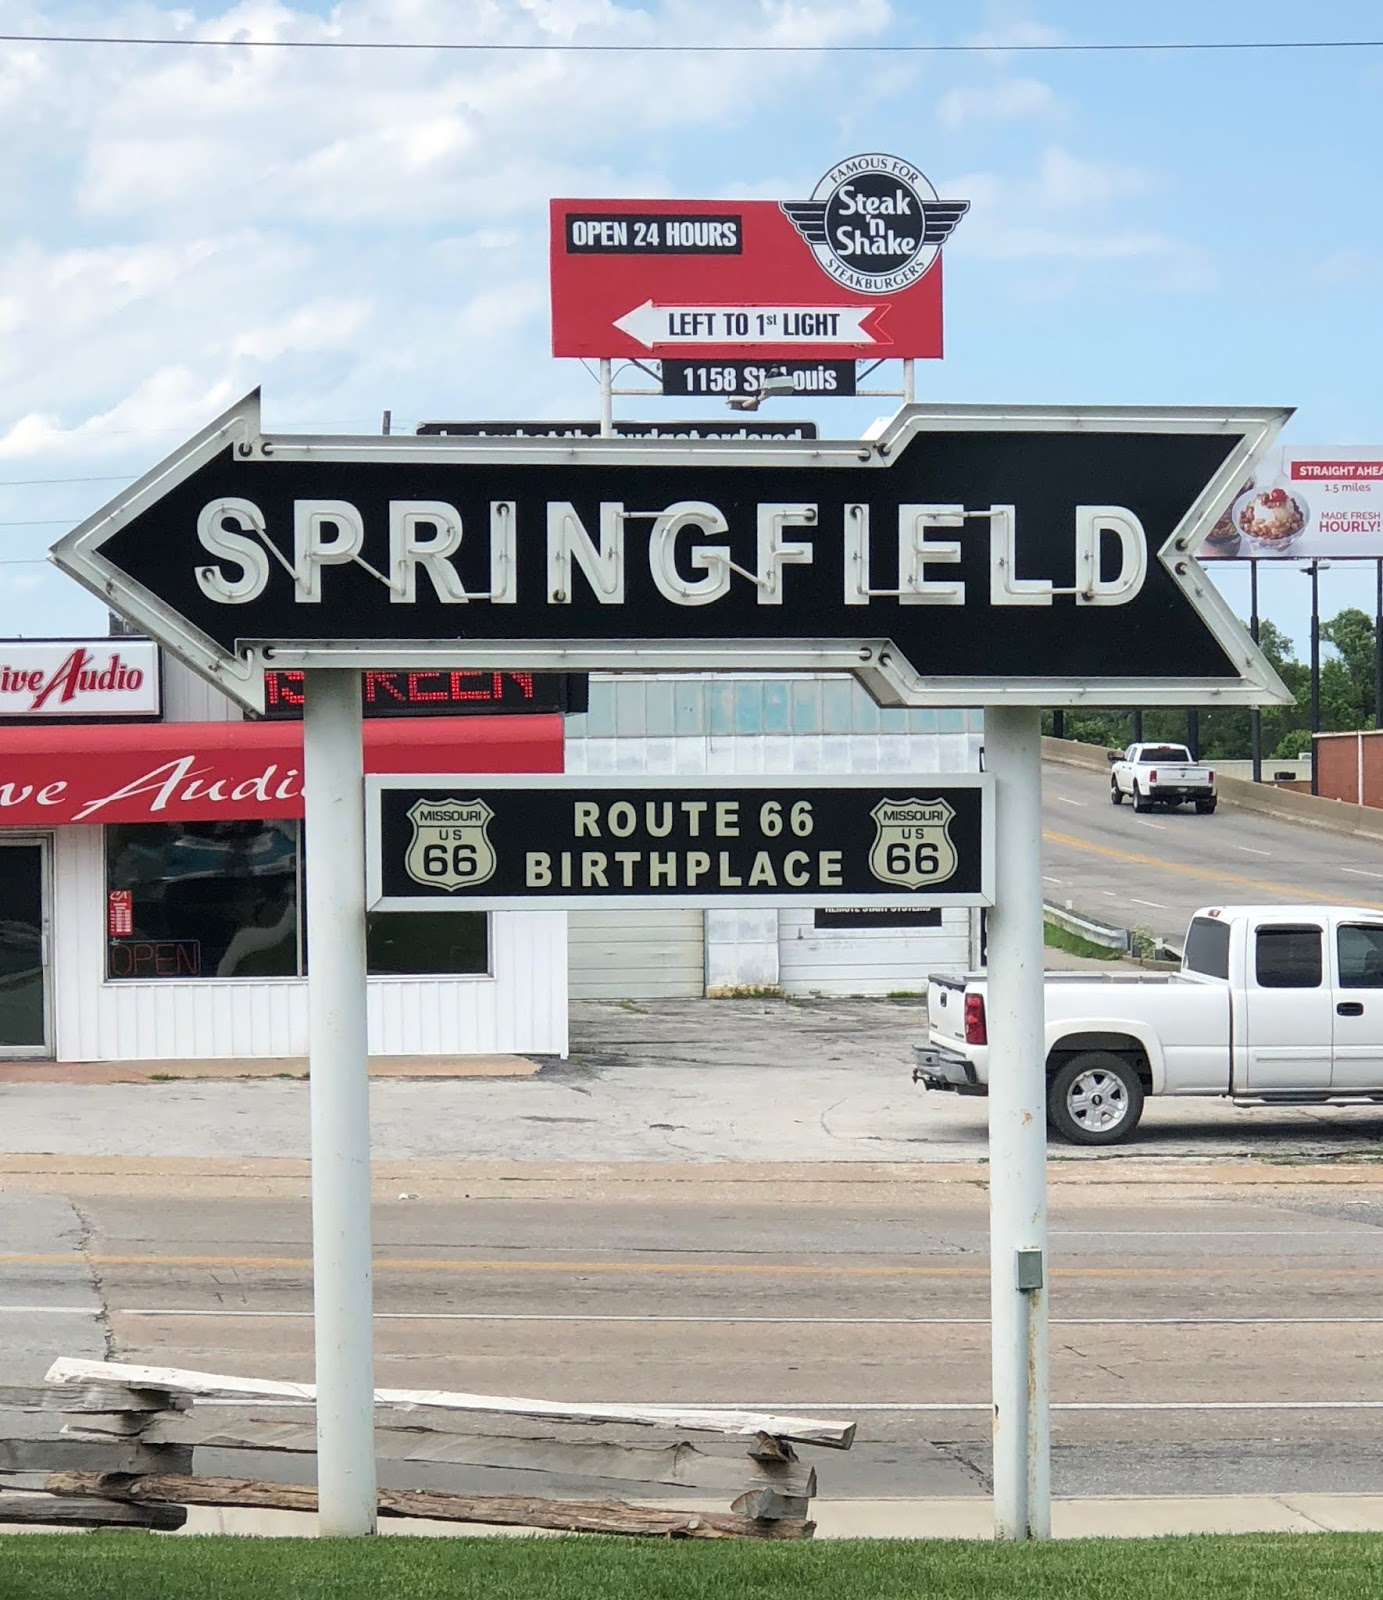 our next stop was springfield via i 44 and we took pictures of two 1956 fords displayed at the old rail haven motel best western now operates the place